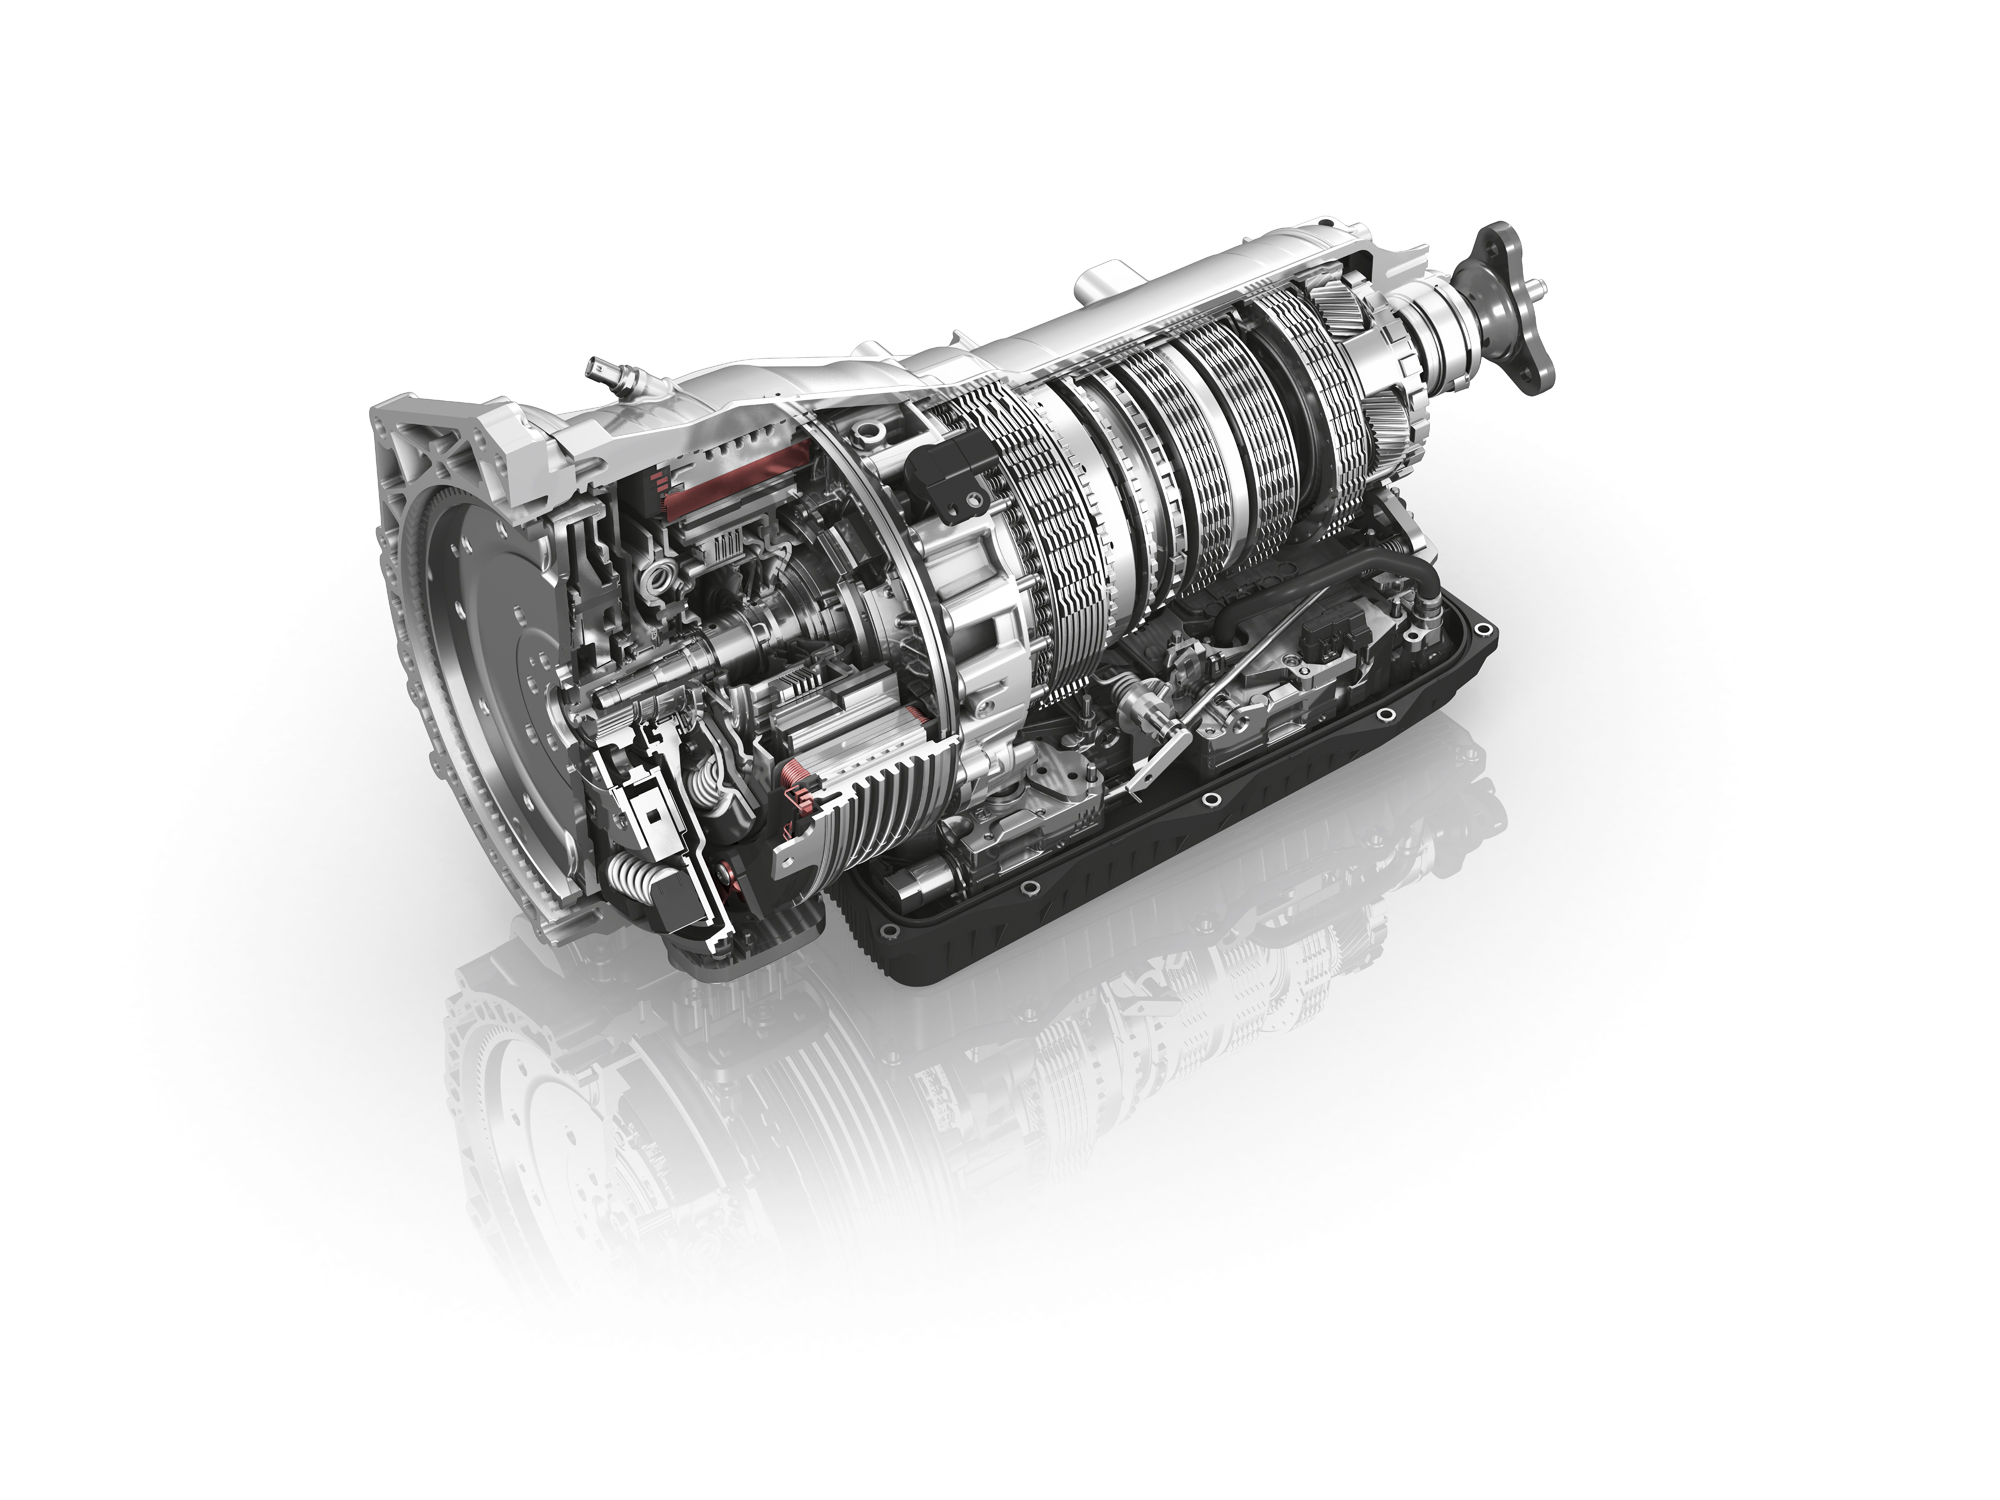 Zf S Newesy Hybrid Transmission For The New Bmw X5